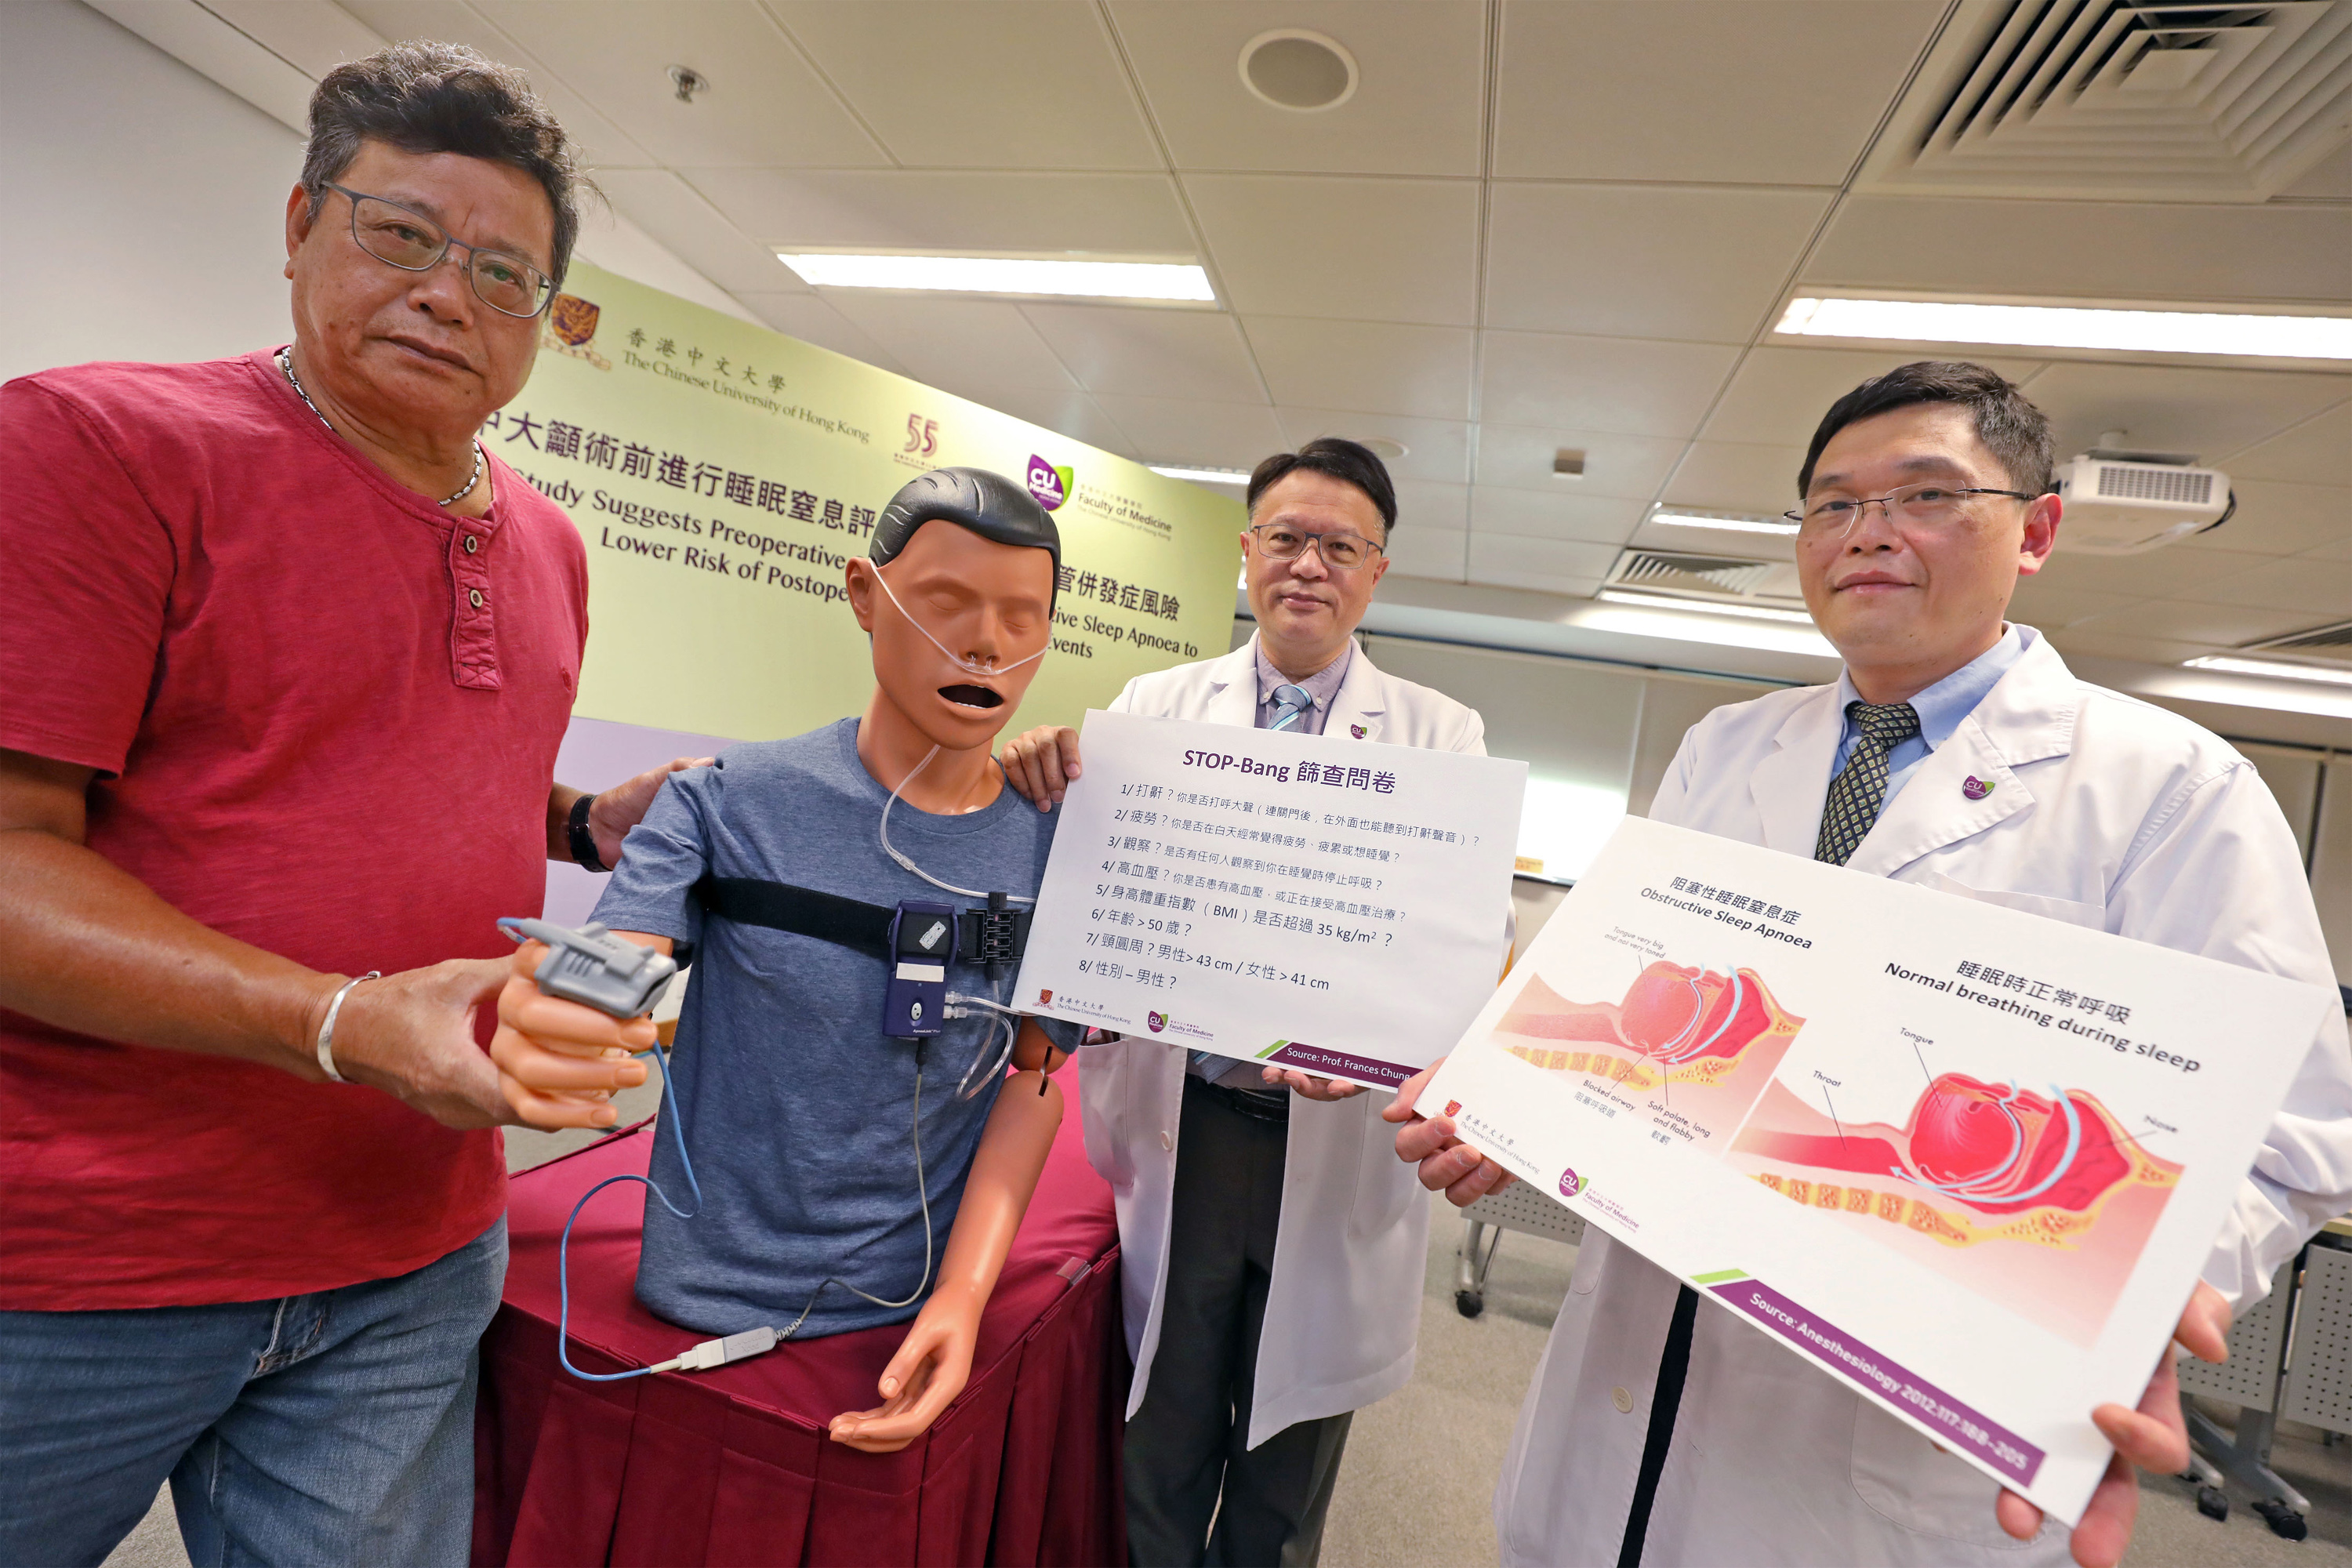 A study conducted by CUHK Faculty of Medicine shows that patients with unrecognised severe OSA have a two-fold increased risk of postoperative cardiovascular complications compared to those without the disorder. Researchers suggest preoperative OSA screening should be considered in clinical practice to lower the risk of postoperative cardiovascular events.